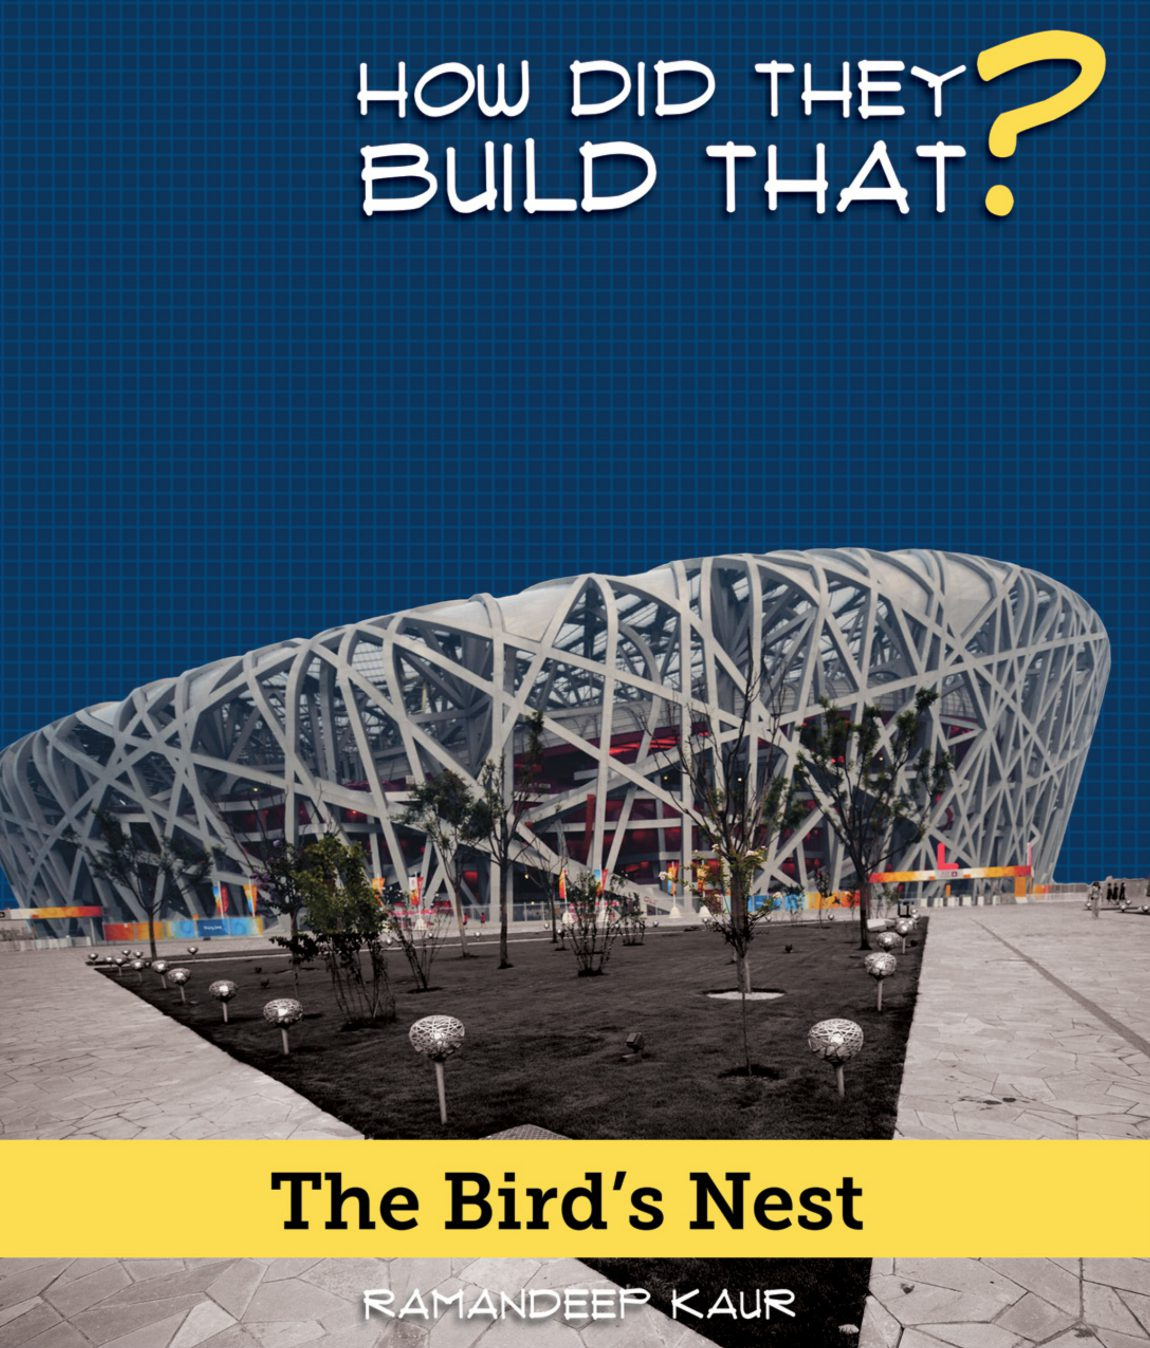 The-Birds-Nest-1.jpg